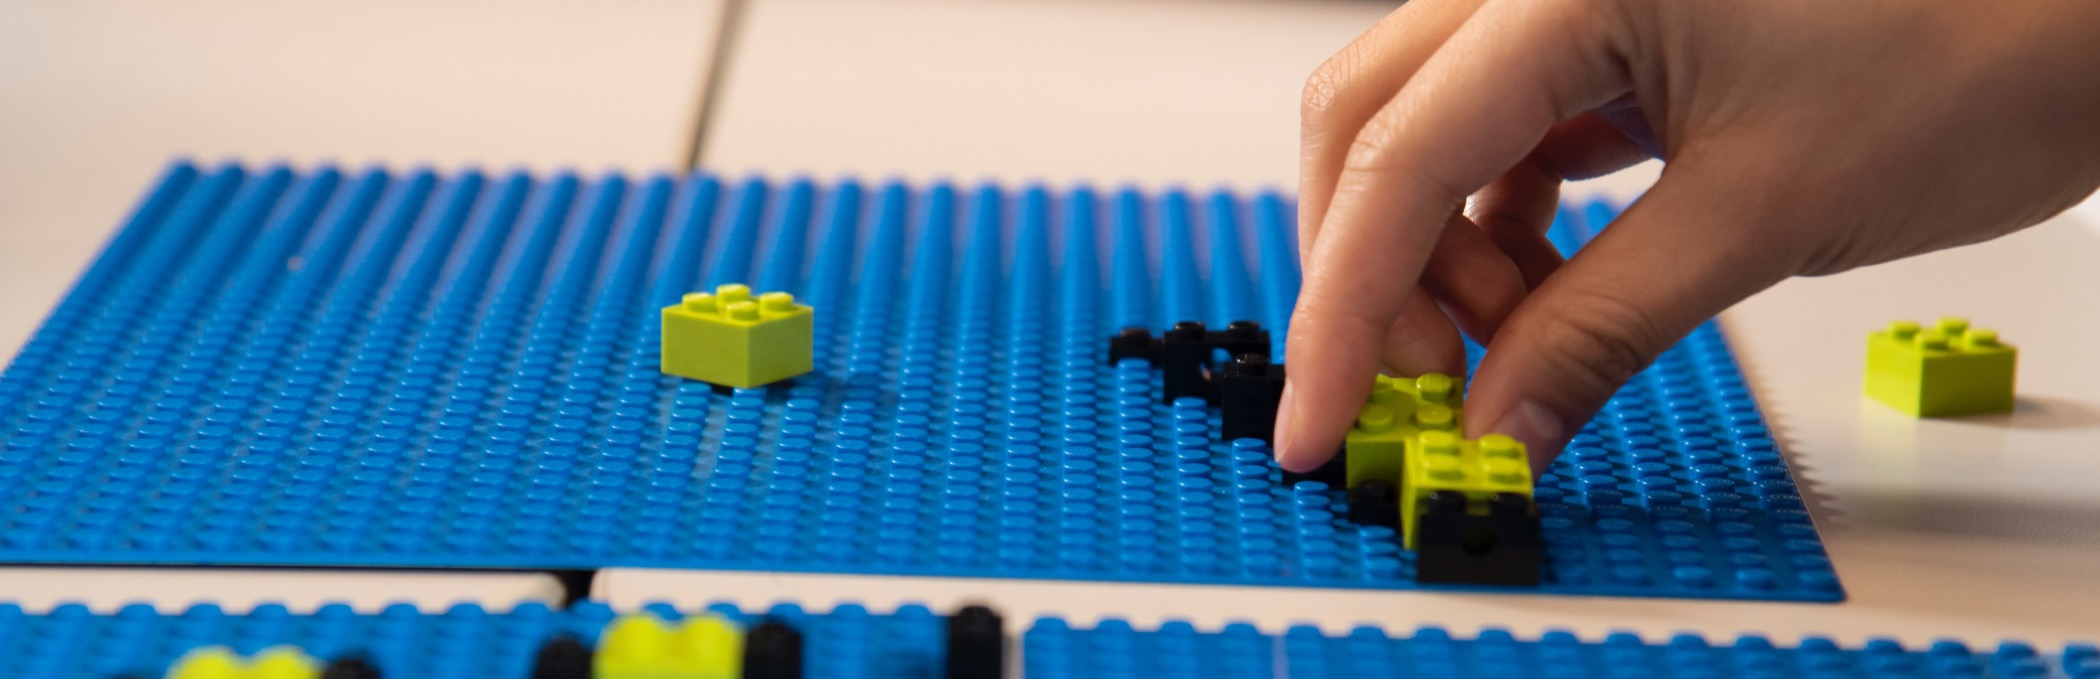 LEGOs coding exercise